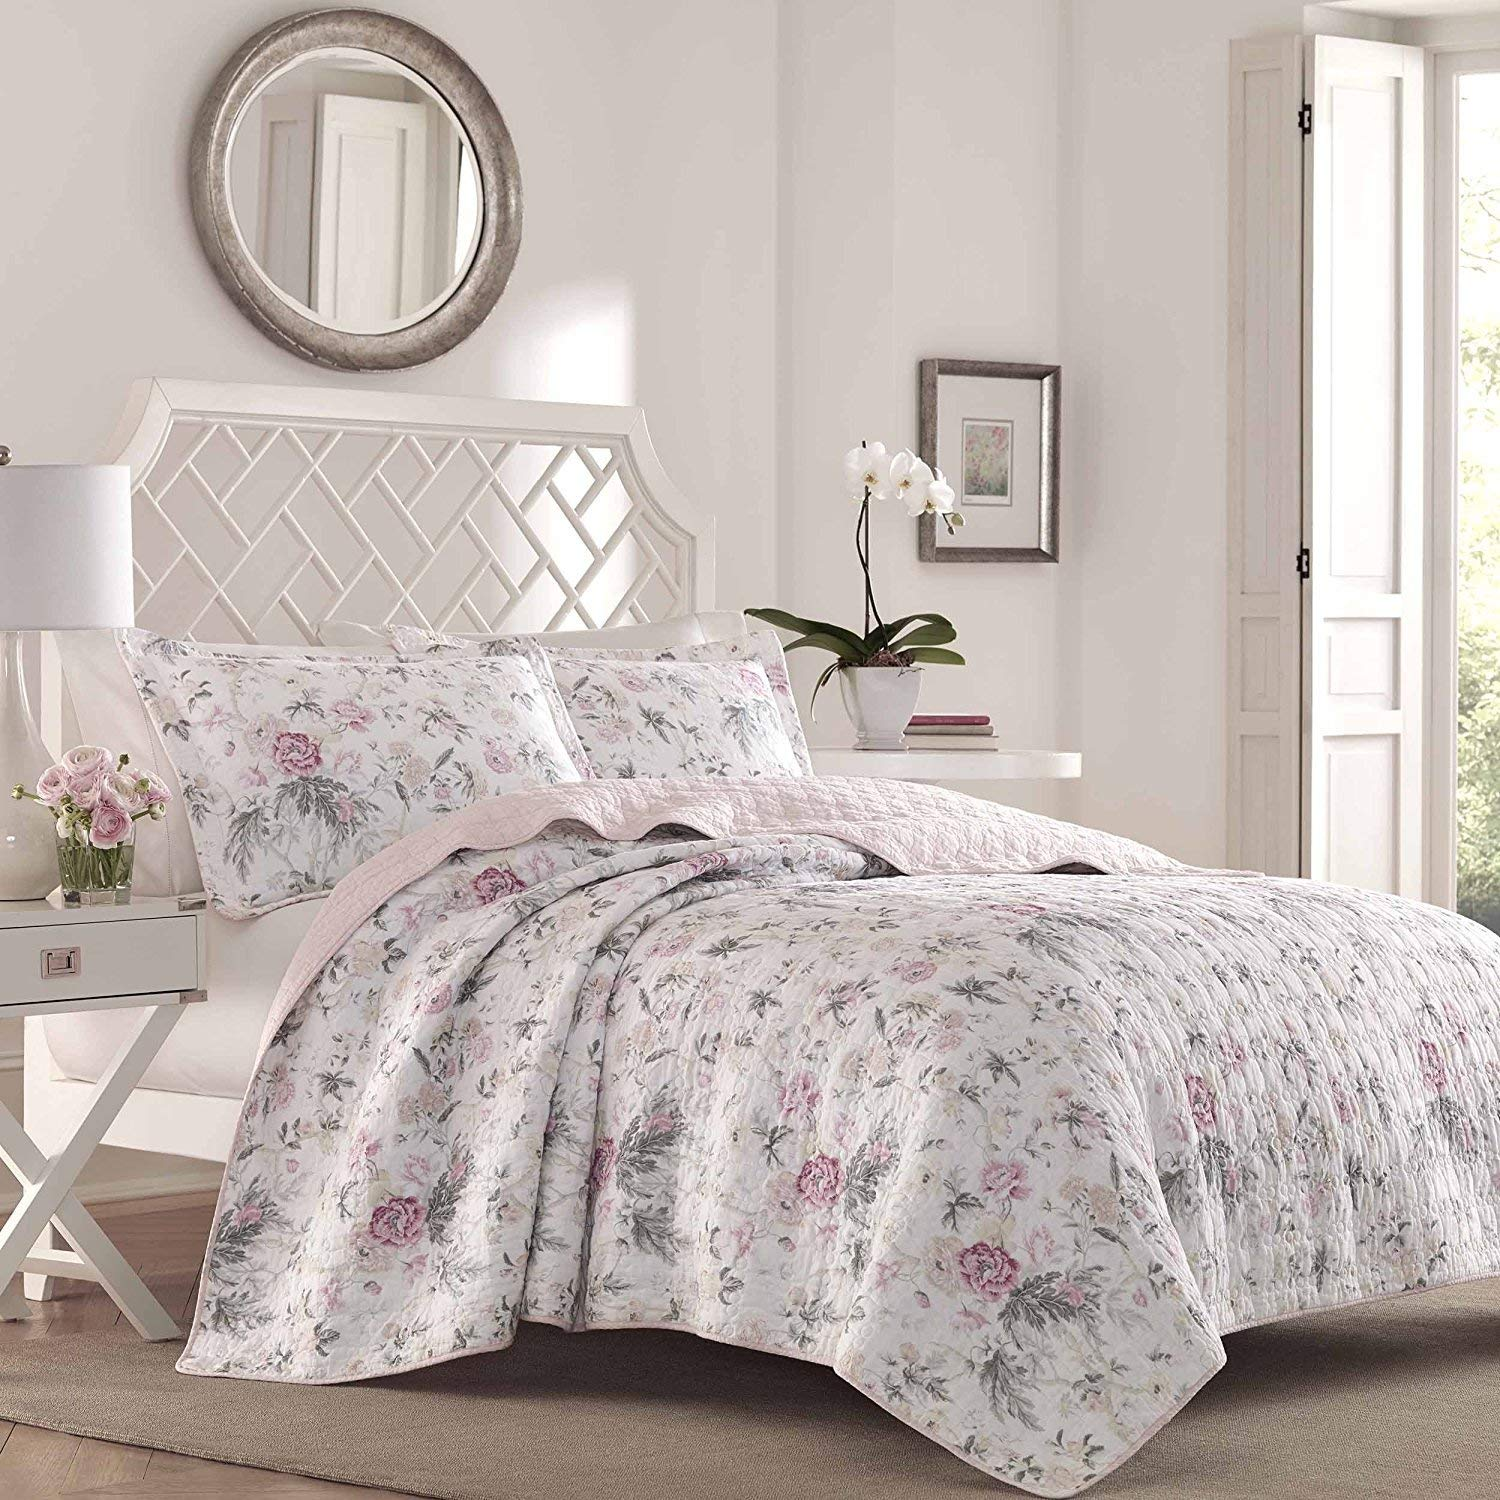 3pc Girls Floral Pattern Quilt Full/Queen Set, Chic Hippy Indie, Vibrant Colors Pink Grey, Tufted Bedding, Elegance Rich Classy Bohemian Flowers Themed, Modern Bedrooms